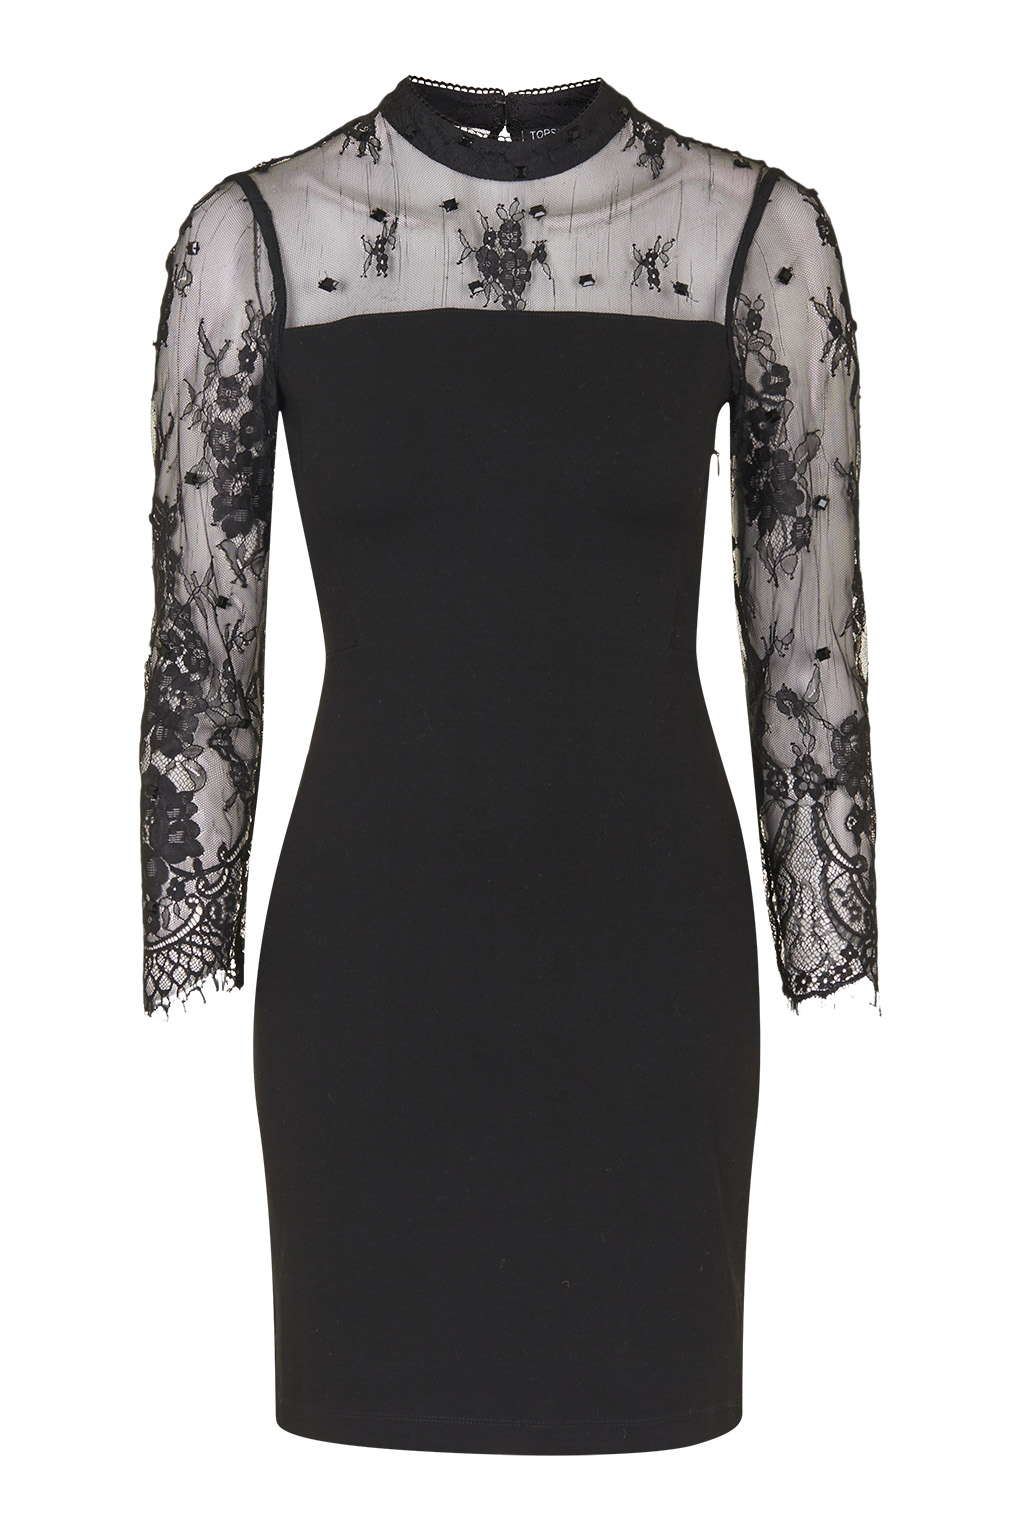 c1184b577ca2 TOPSHOP Beaded Lace Bodycon Dress in Black - Lyst